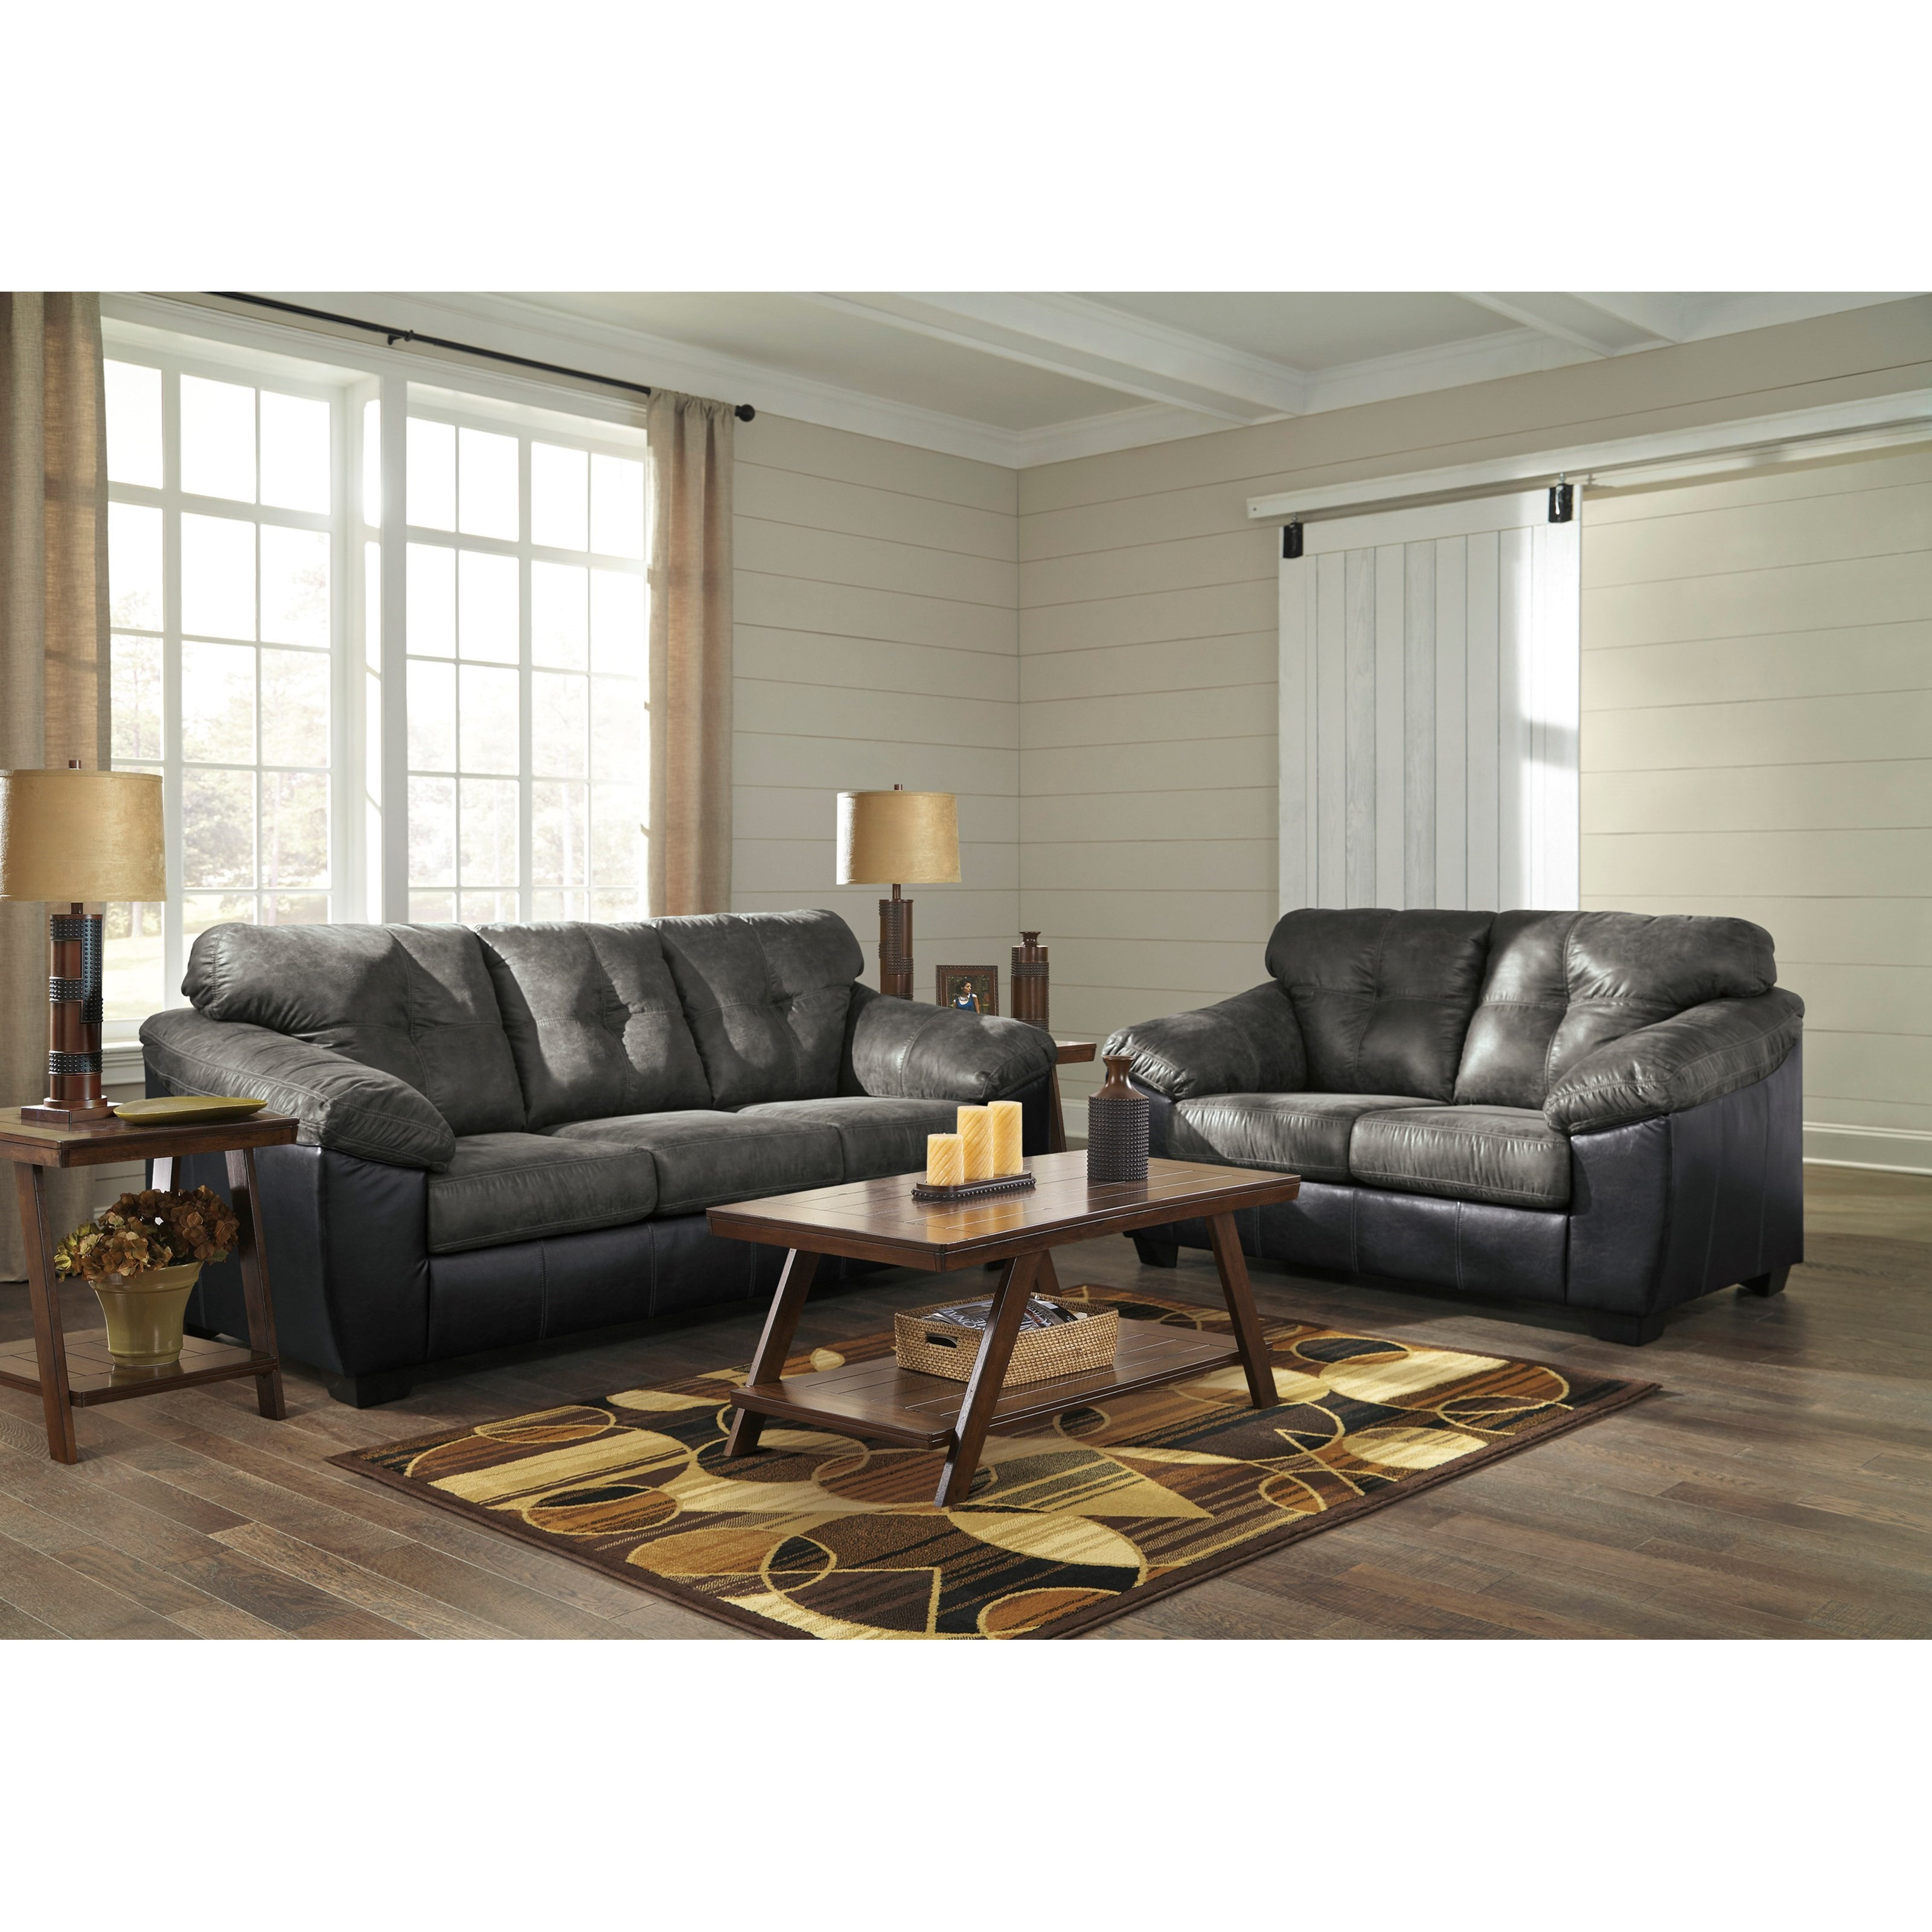 Signature Home Furnishings: Signature Design By Ashley Gregale Two Tone Faux Leather